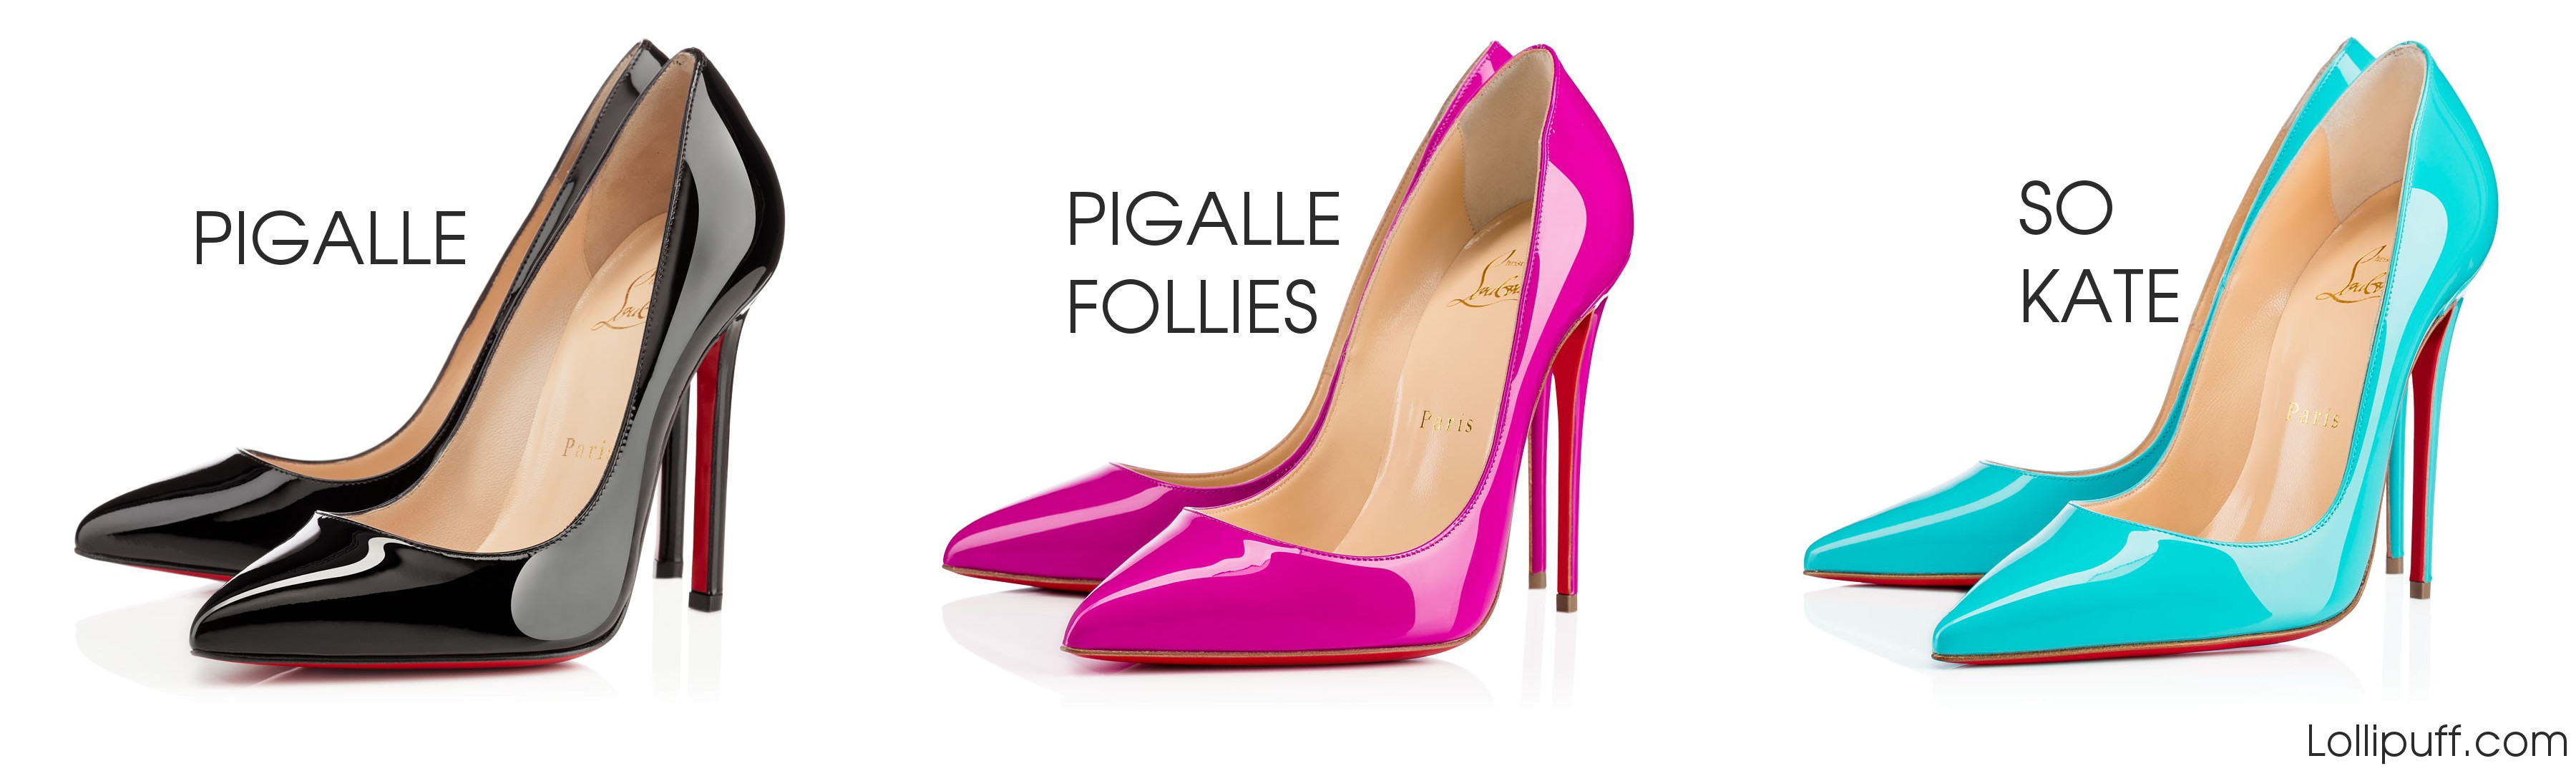 1de2e1659142 Christian Louboutin pointed toe pumps pigalle follies so kate comparison